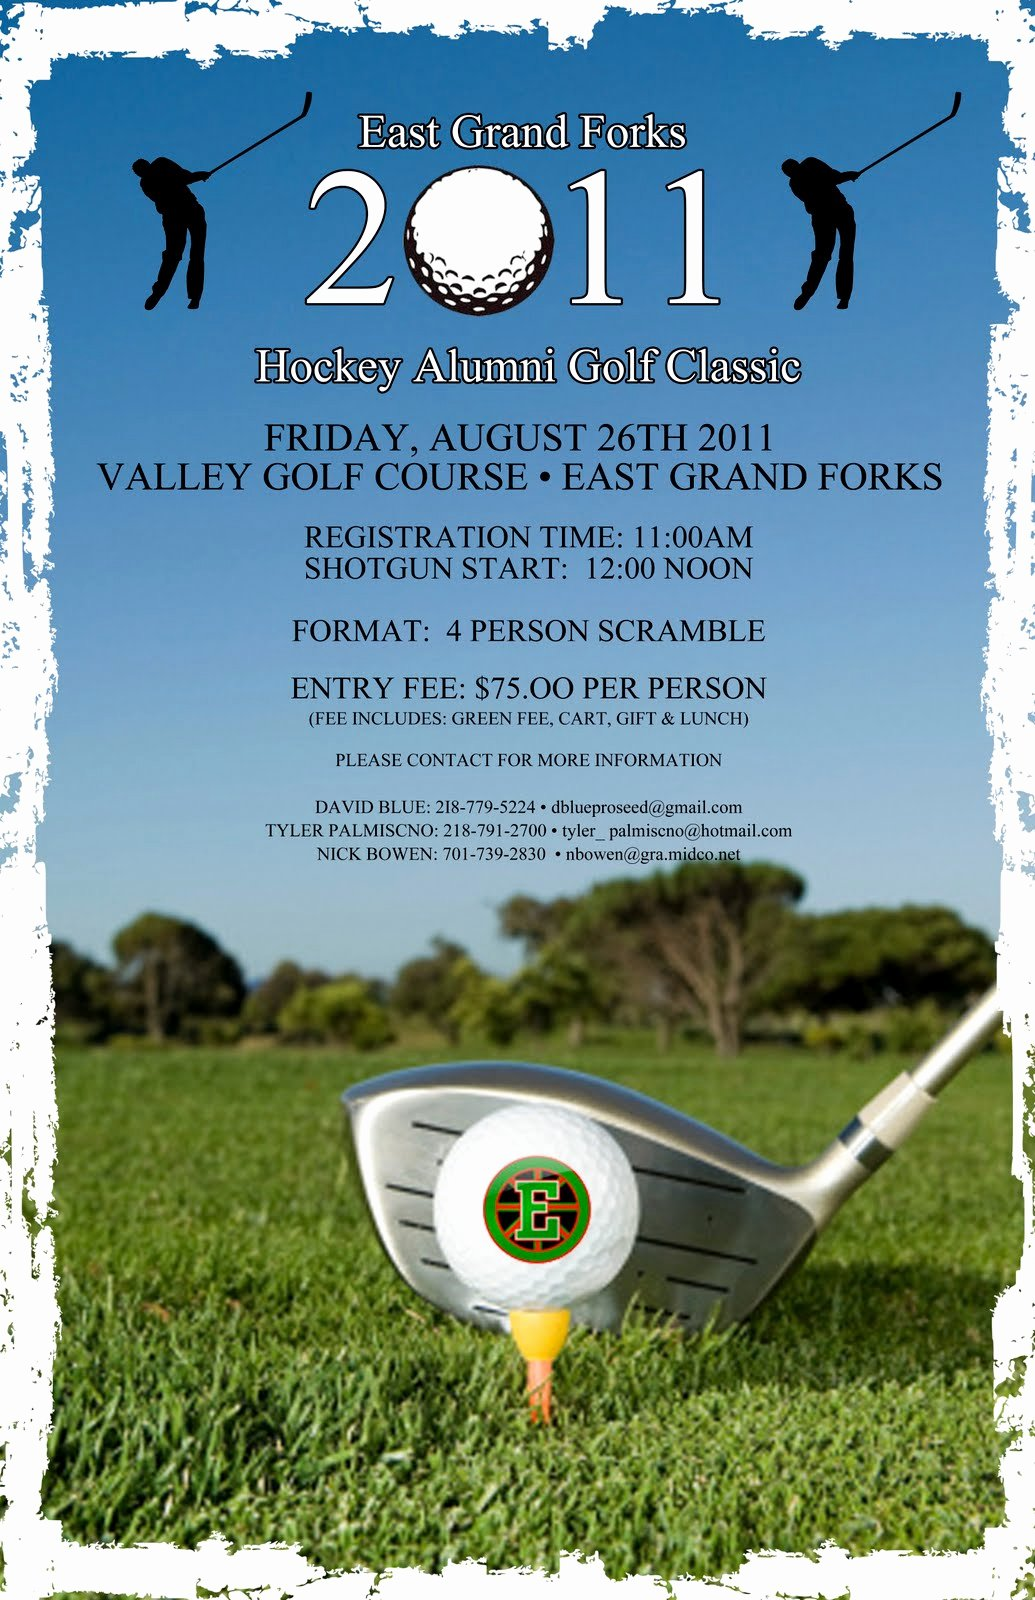 Free Golf tournament Flyers Templates Luxury East Grand forks Greenwave Hockey Golf tournament